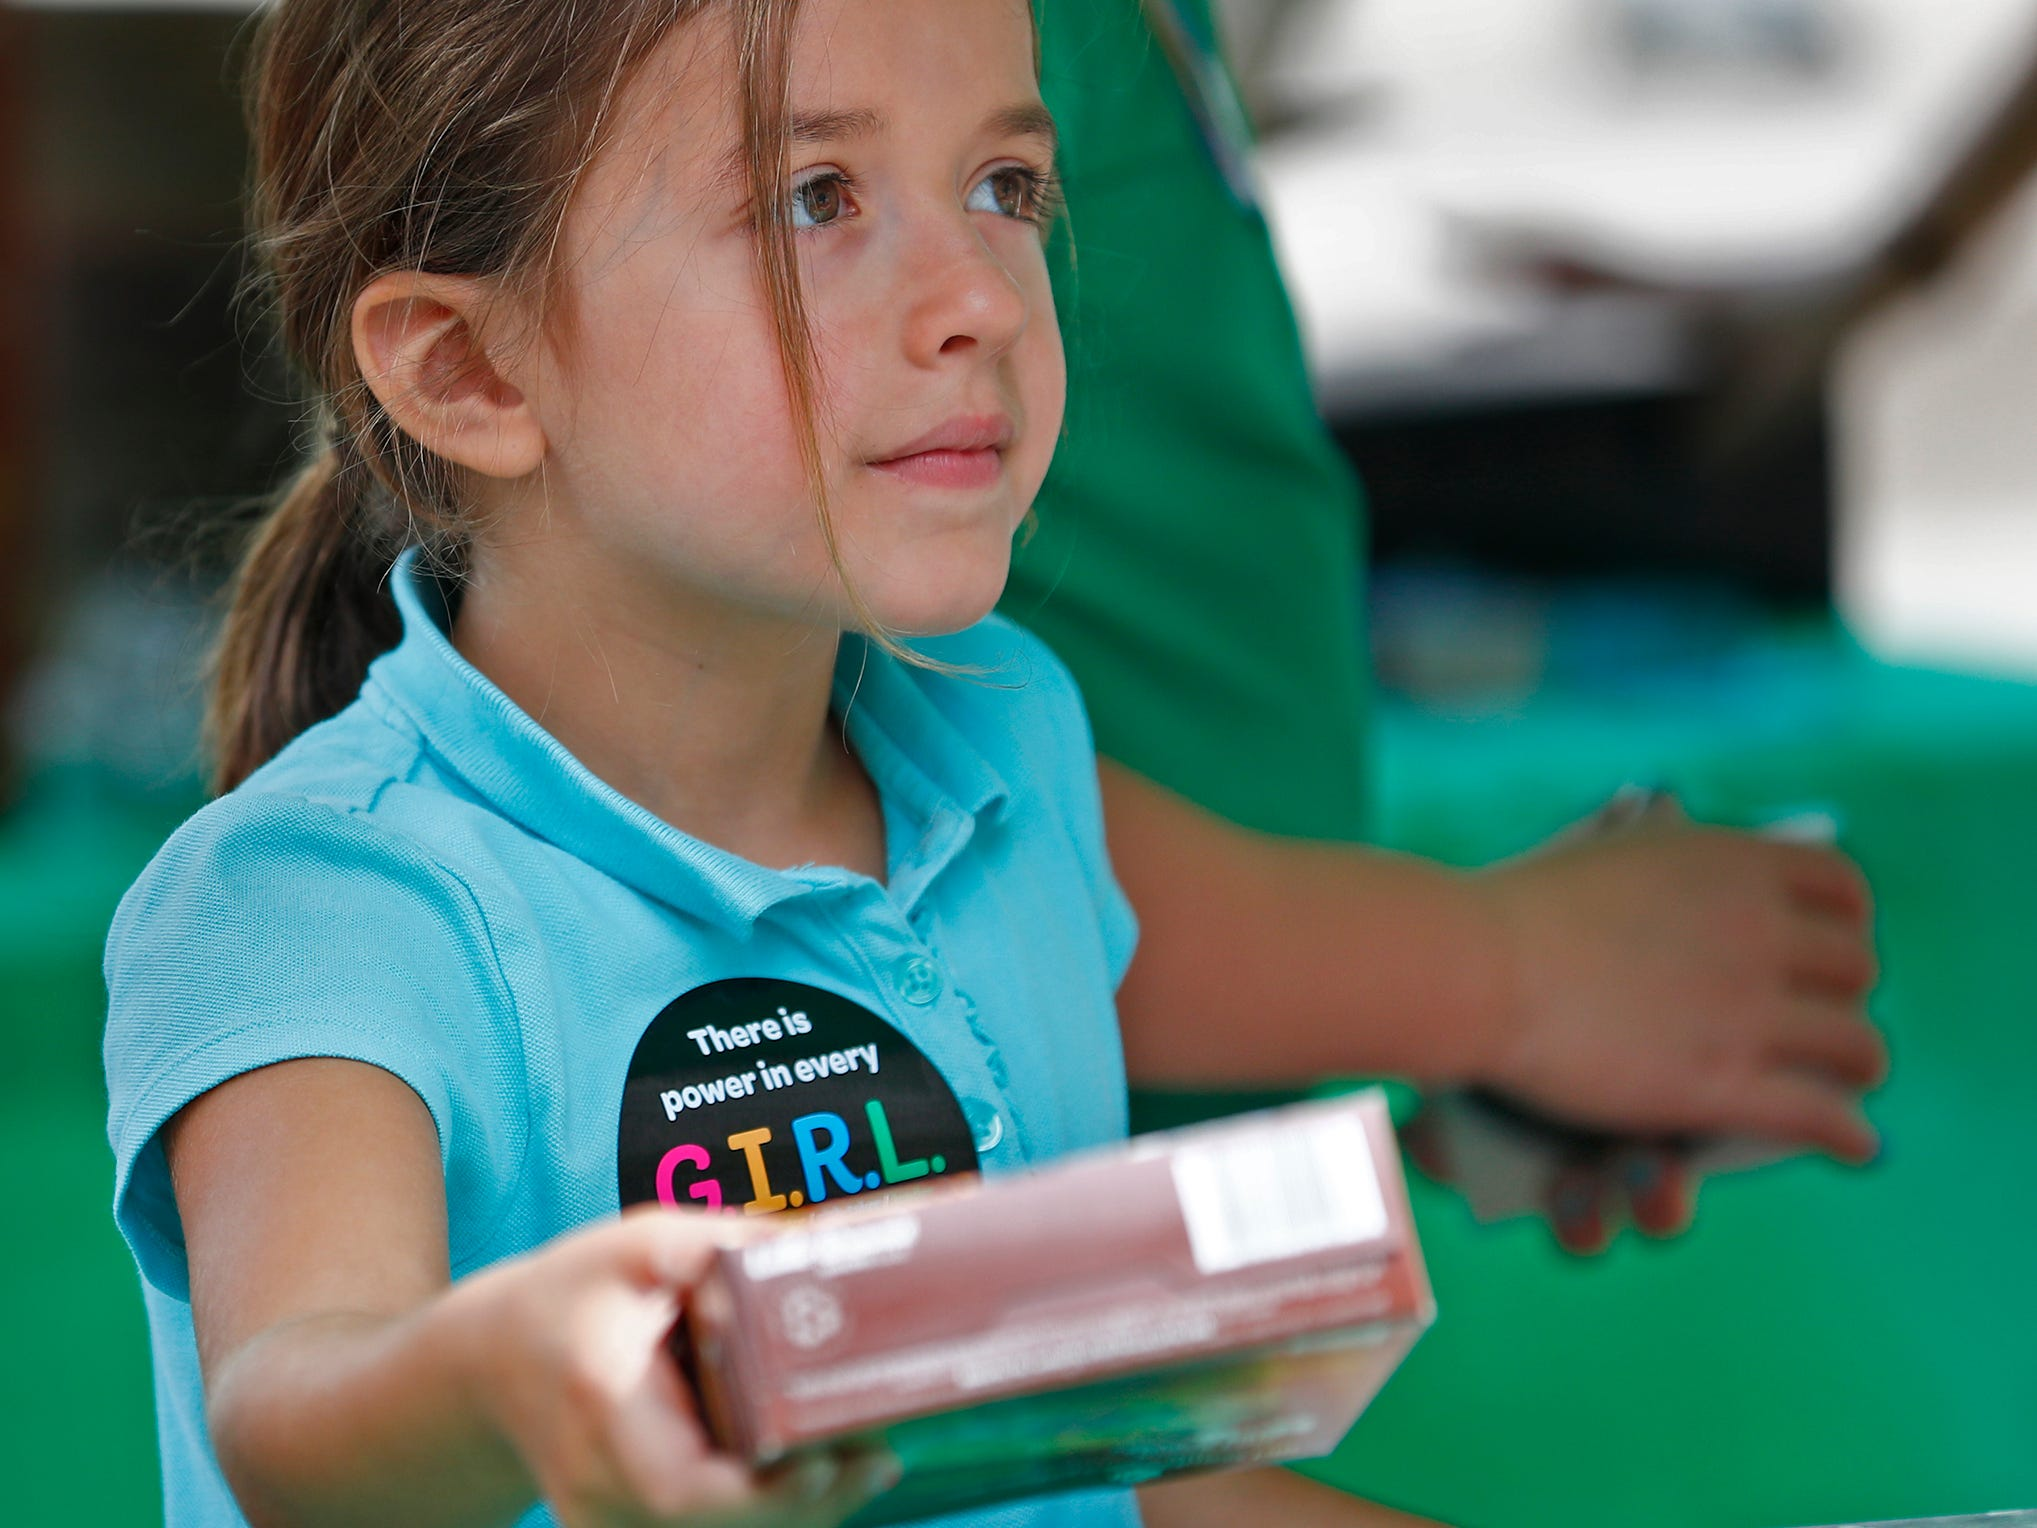 Jordan Morales hands out boxes of Girl Scouts S'mores cookies during the Girl Scouts' S'mores on the Circle event, Friday, Aug. 10, 2018.  The event celebrated National S'mores Day.  Seven local chefs were featured, creating gourmet s'mores treats, sold as a fundraiser.  Proceeds go for financial assistance for Girl Scouts, helping all girls who want to be a girl scout participating in hands-on adventures and STEM activities.